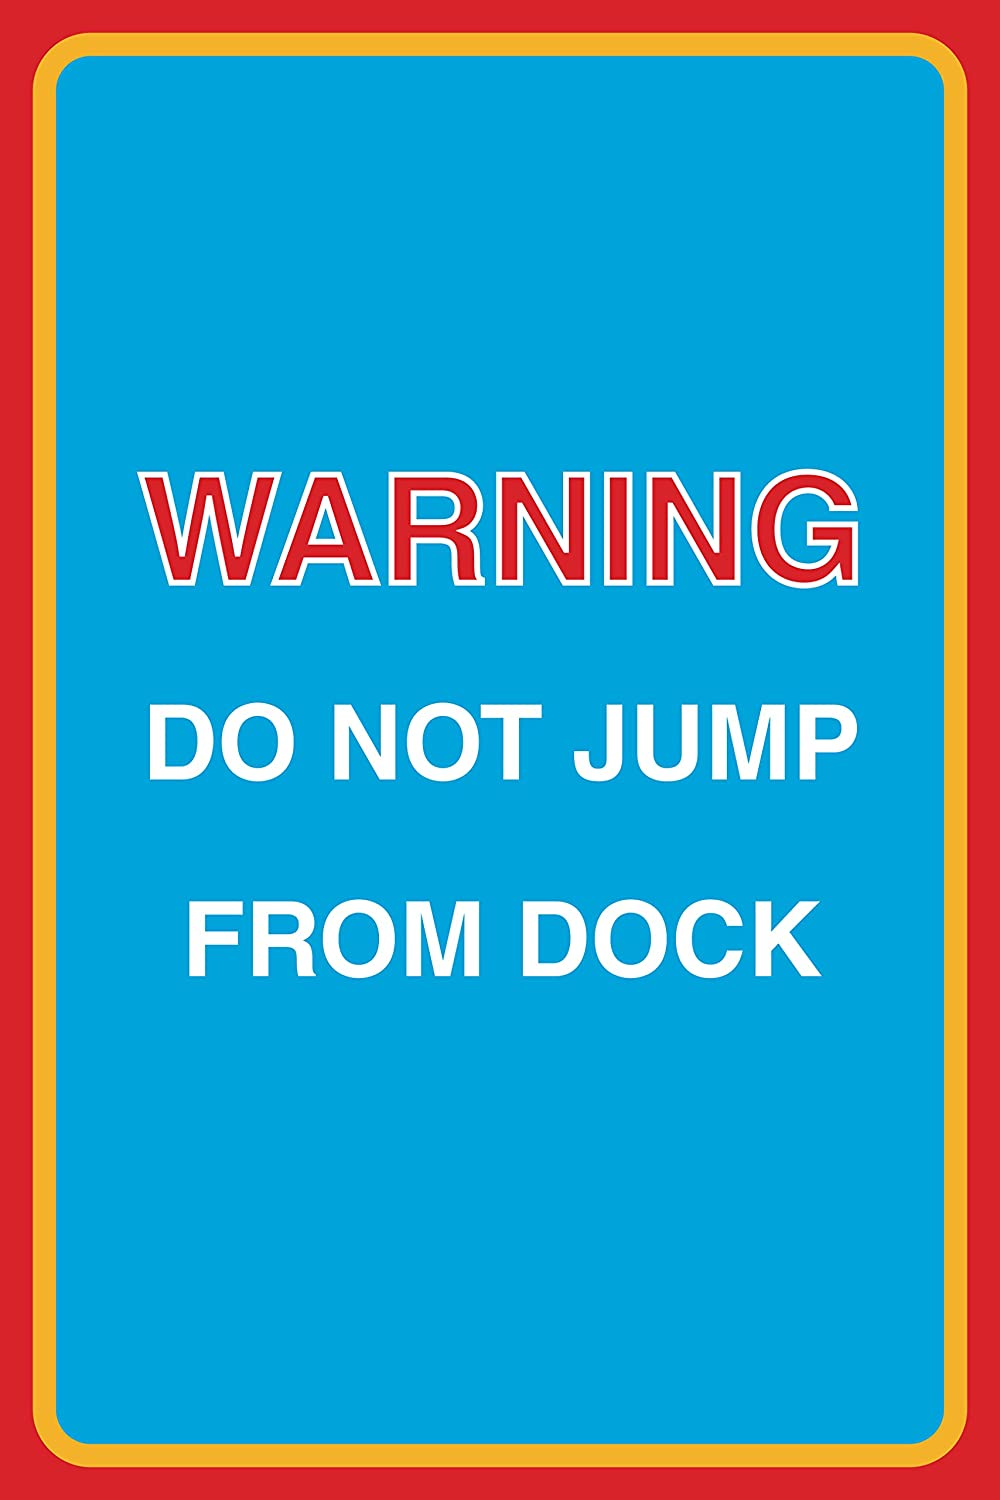 Warning Do Not Jump From Dock Print Lake Pond Ocean Water Large Public Notice Sign Aluminum Metal 12x18 4 Pack